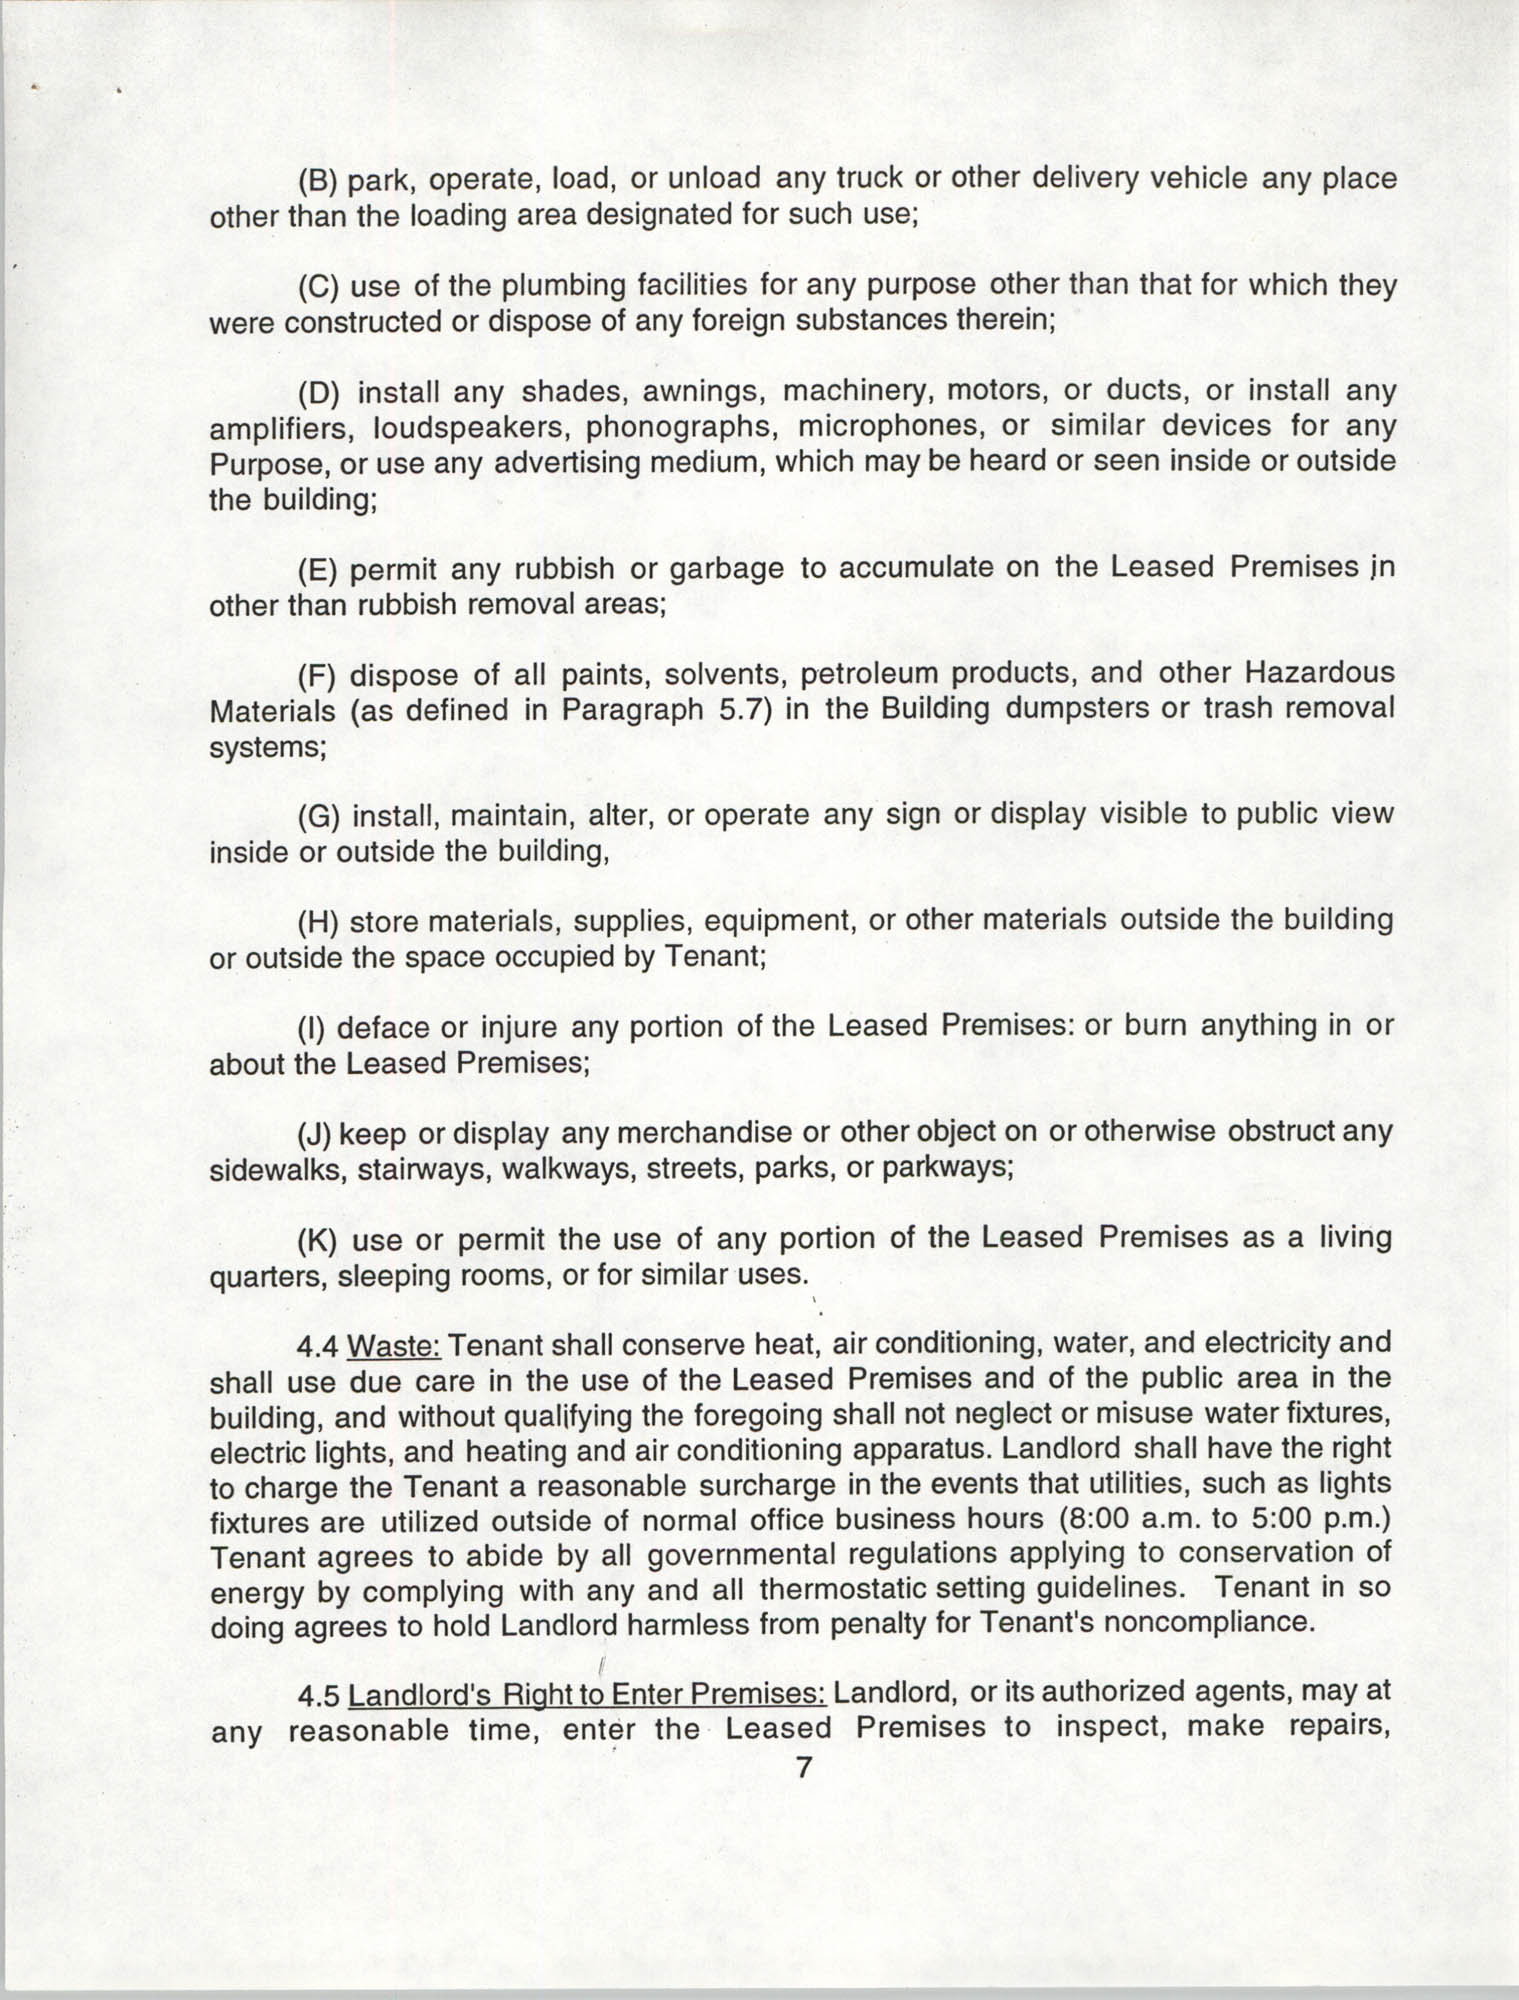 Charleston Branch of the NAACP Leasing Agreement, July 1994 to June 1995, Page 7